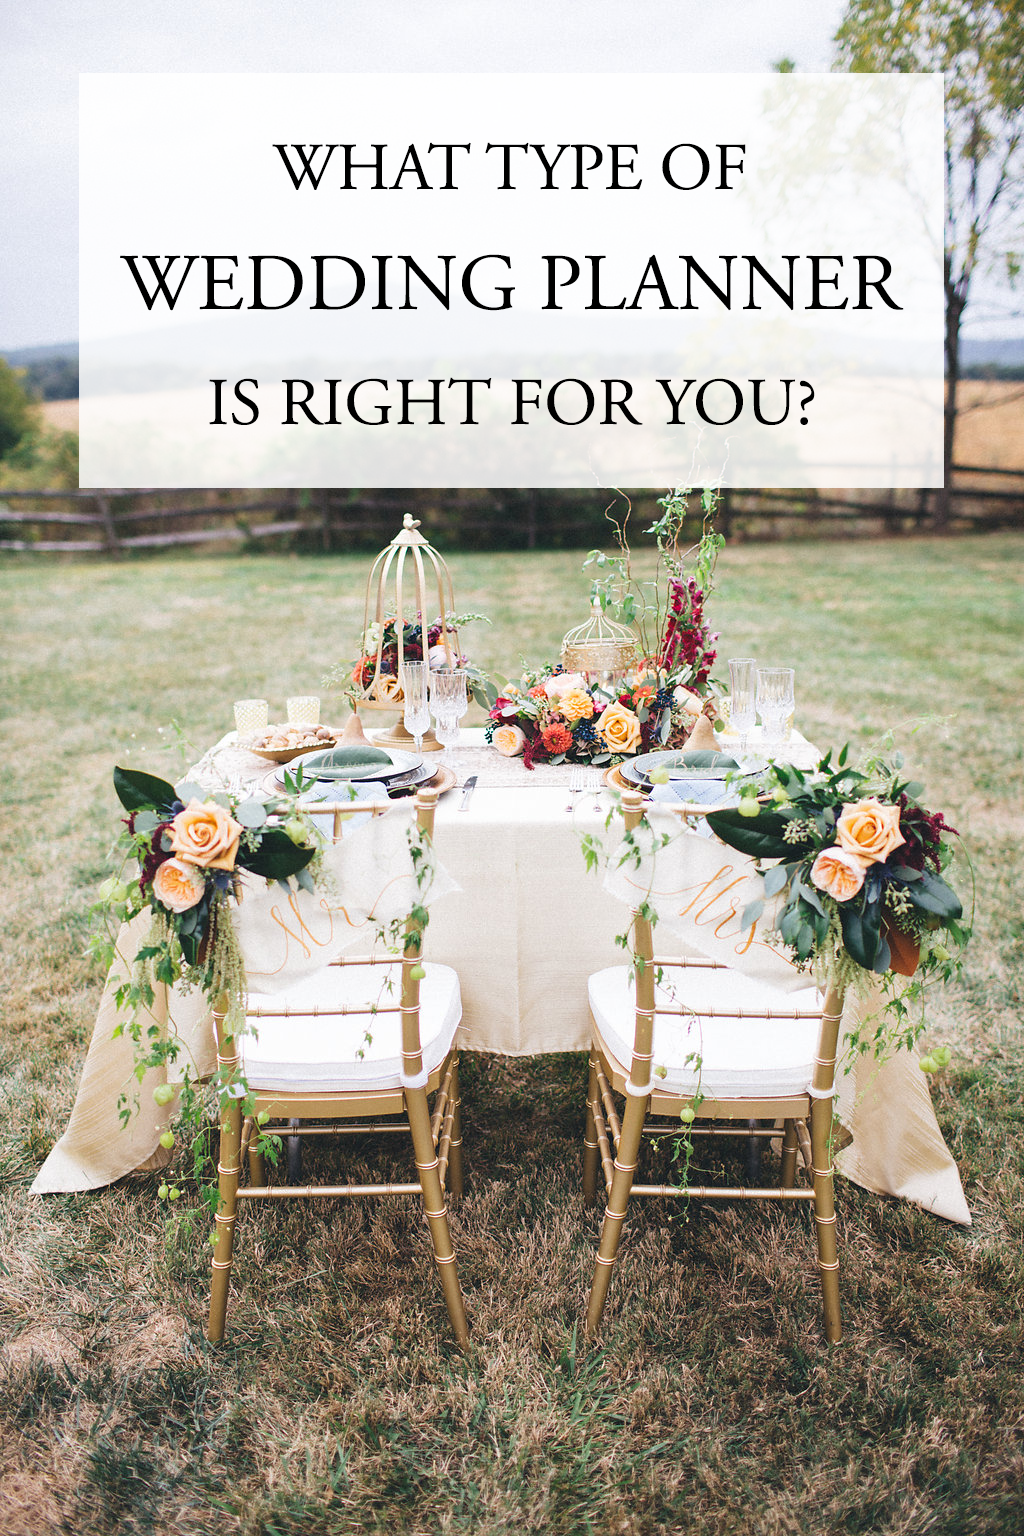 What Type of Wedding Planner is Right for You? | Junebug Weddings